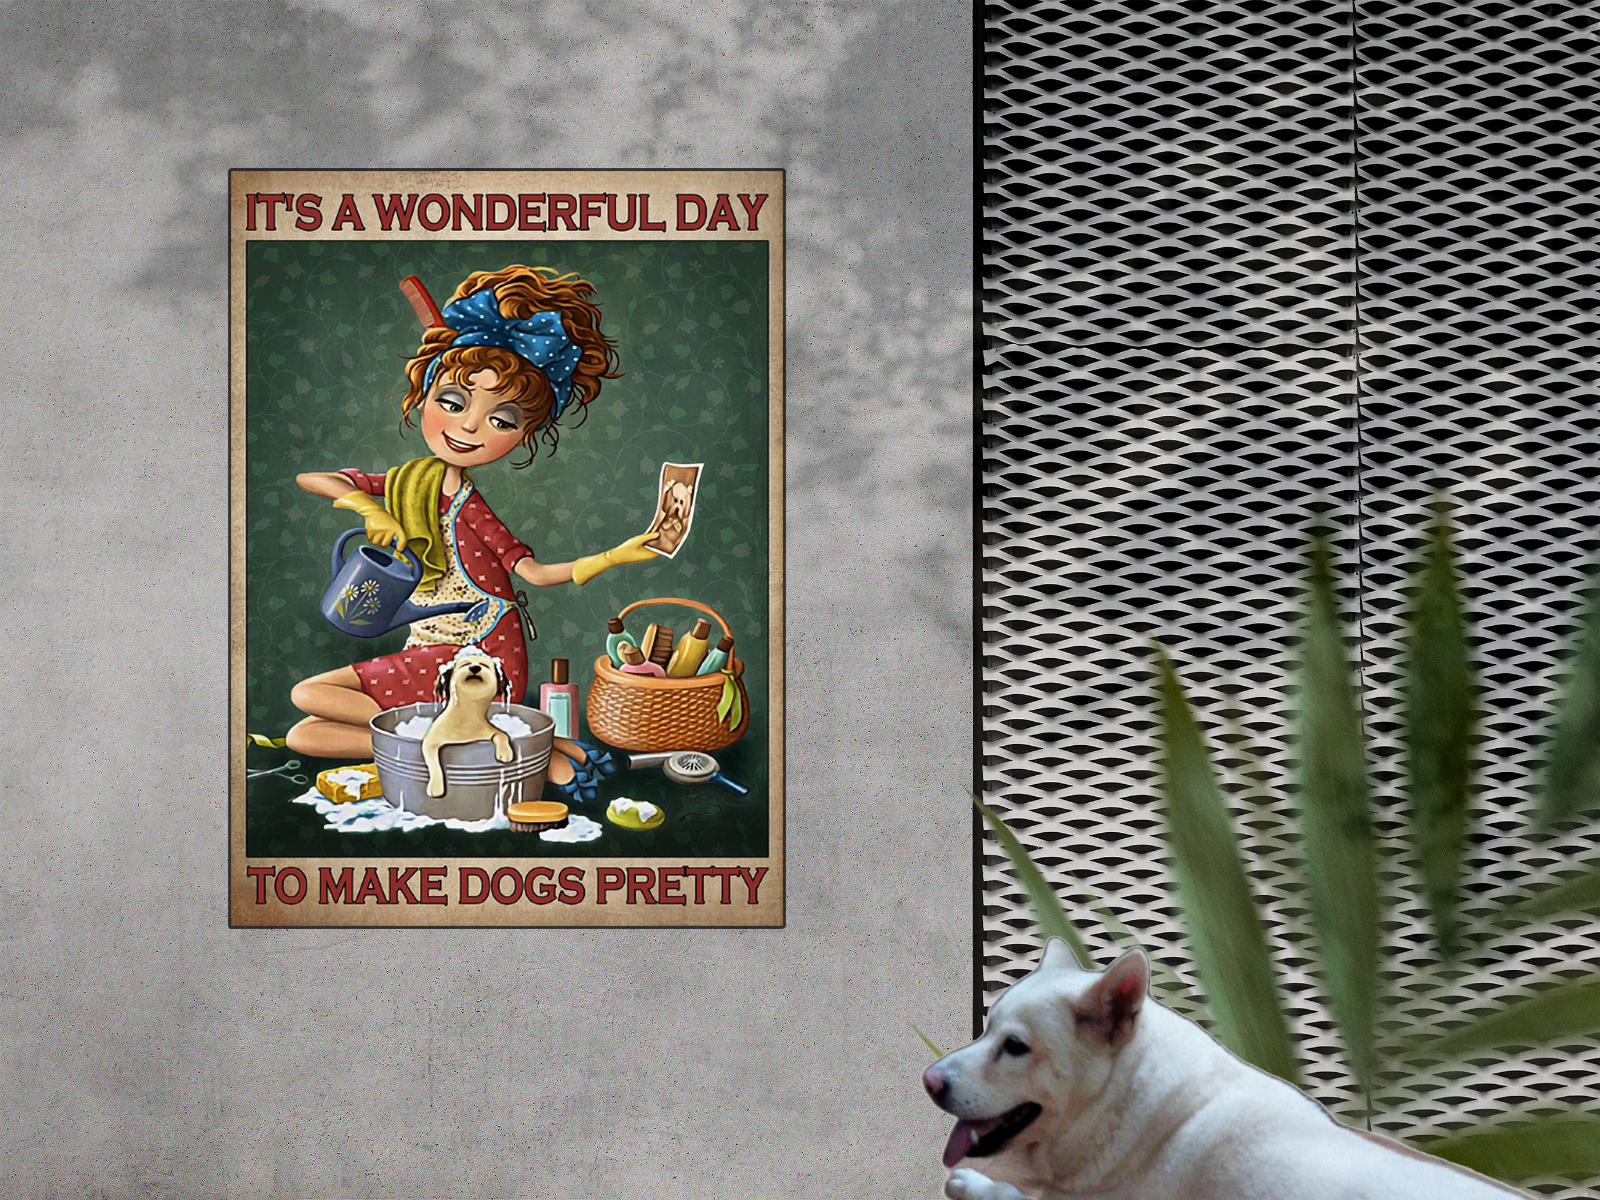 It's a wonderful day to make dogs pretty poster